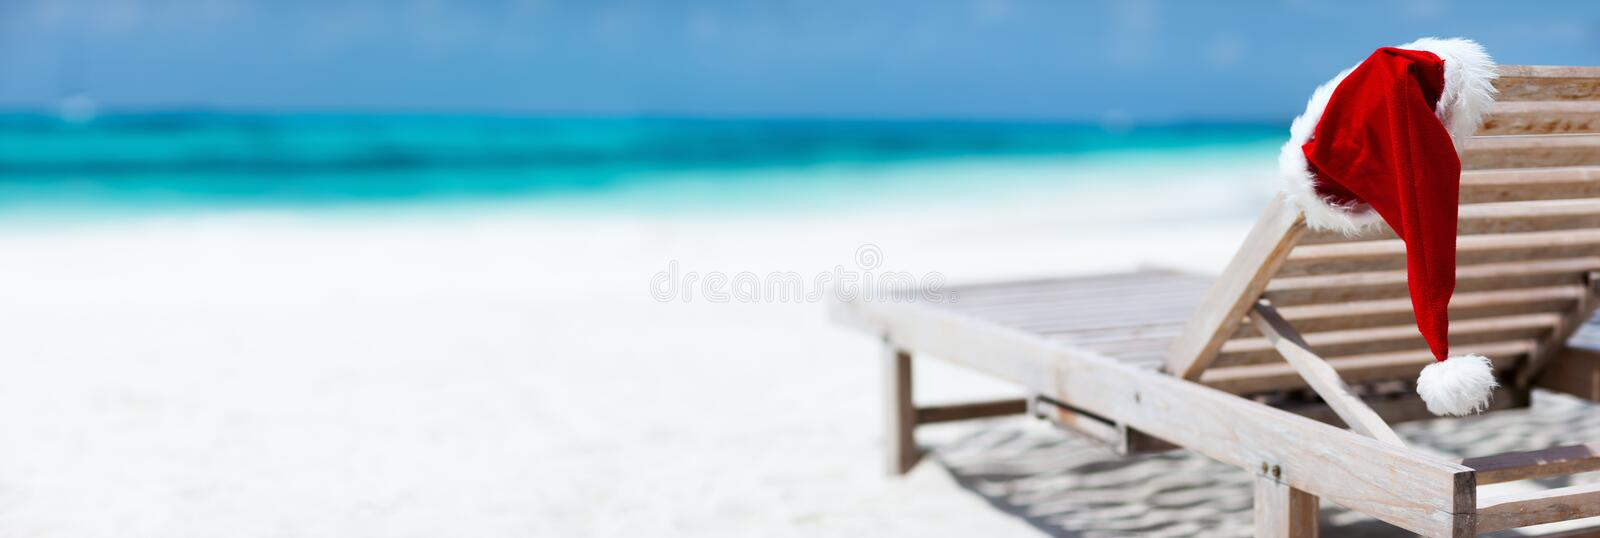 Christmas beach vacation. Panorama of sun chair with Santa hats on beautiful tropical beach with white sand and turquoise water, perfect Christmas vacation royalty free stock photo